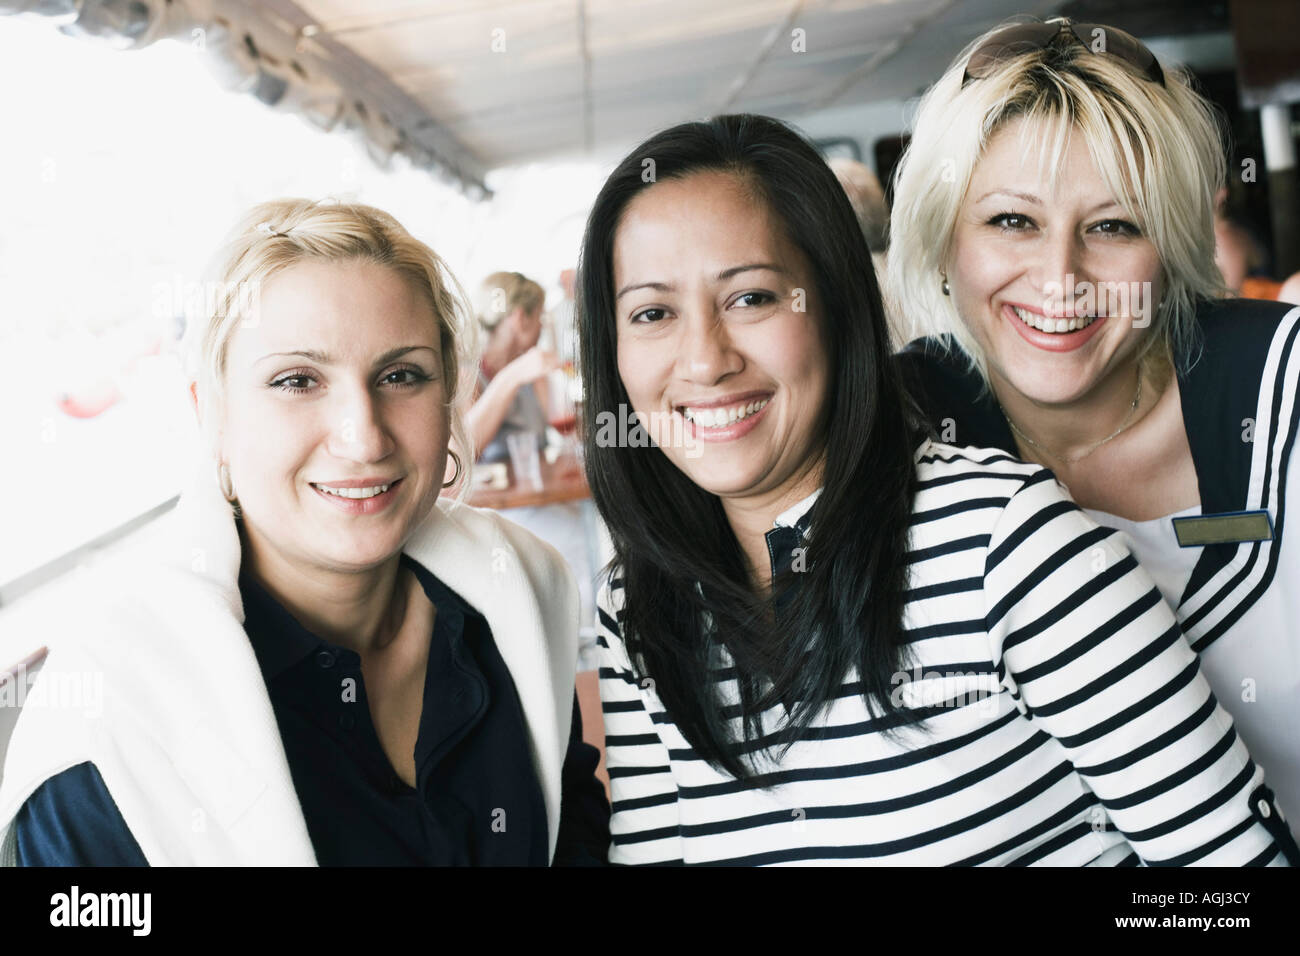 Portrait of three friends smiling - Stock Image